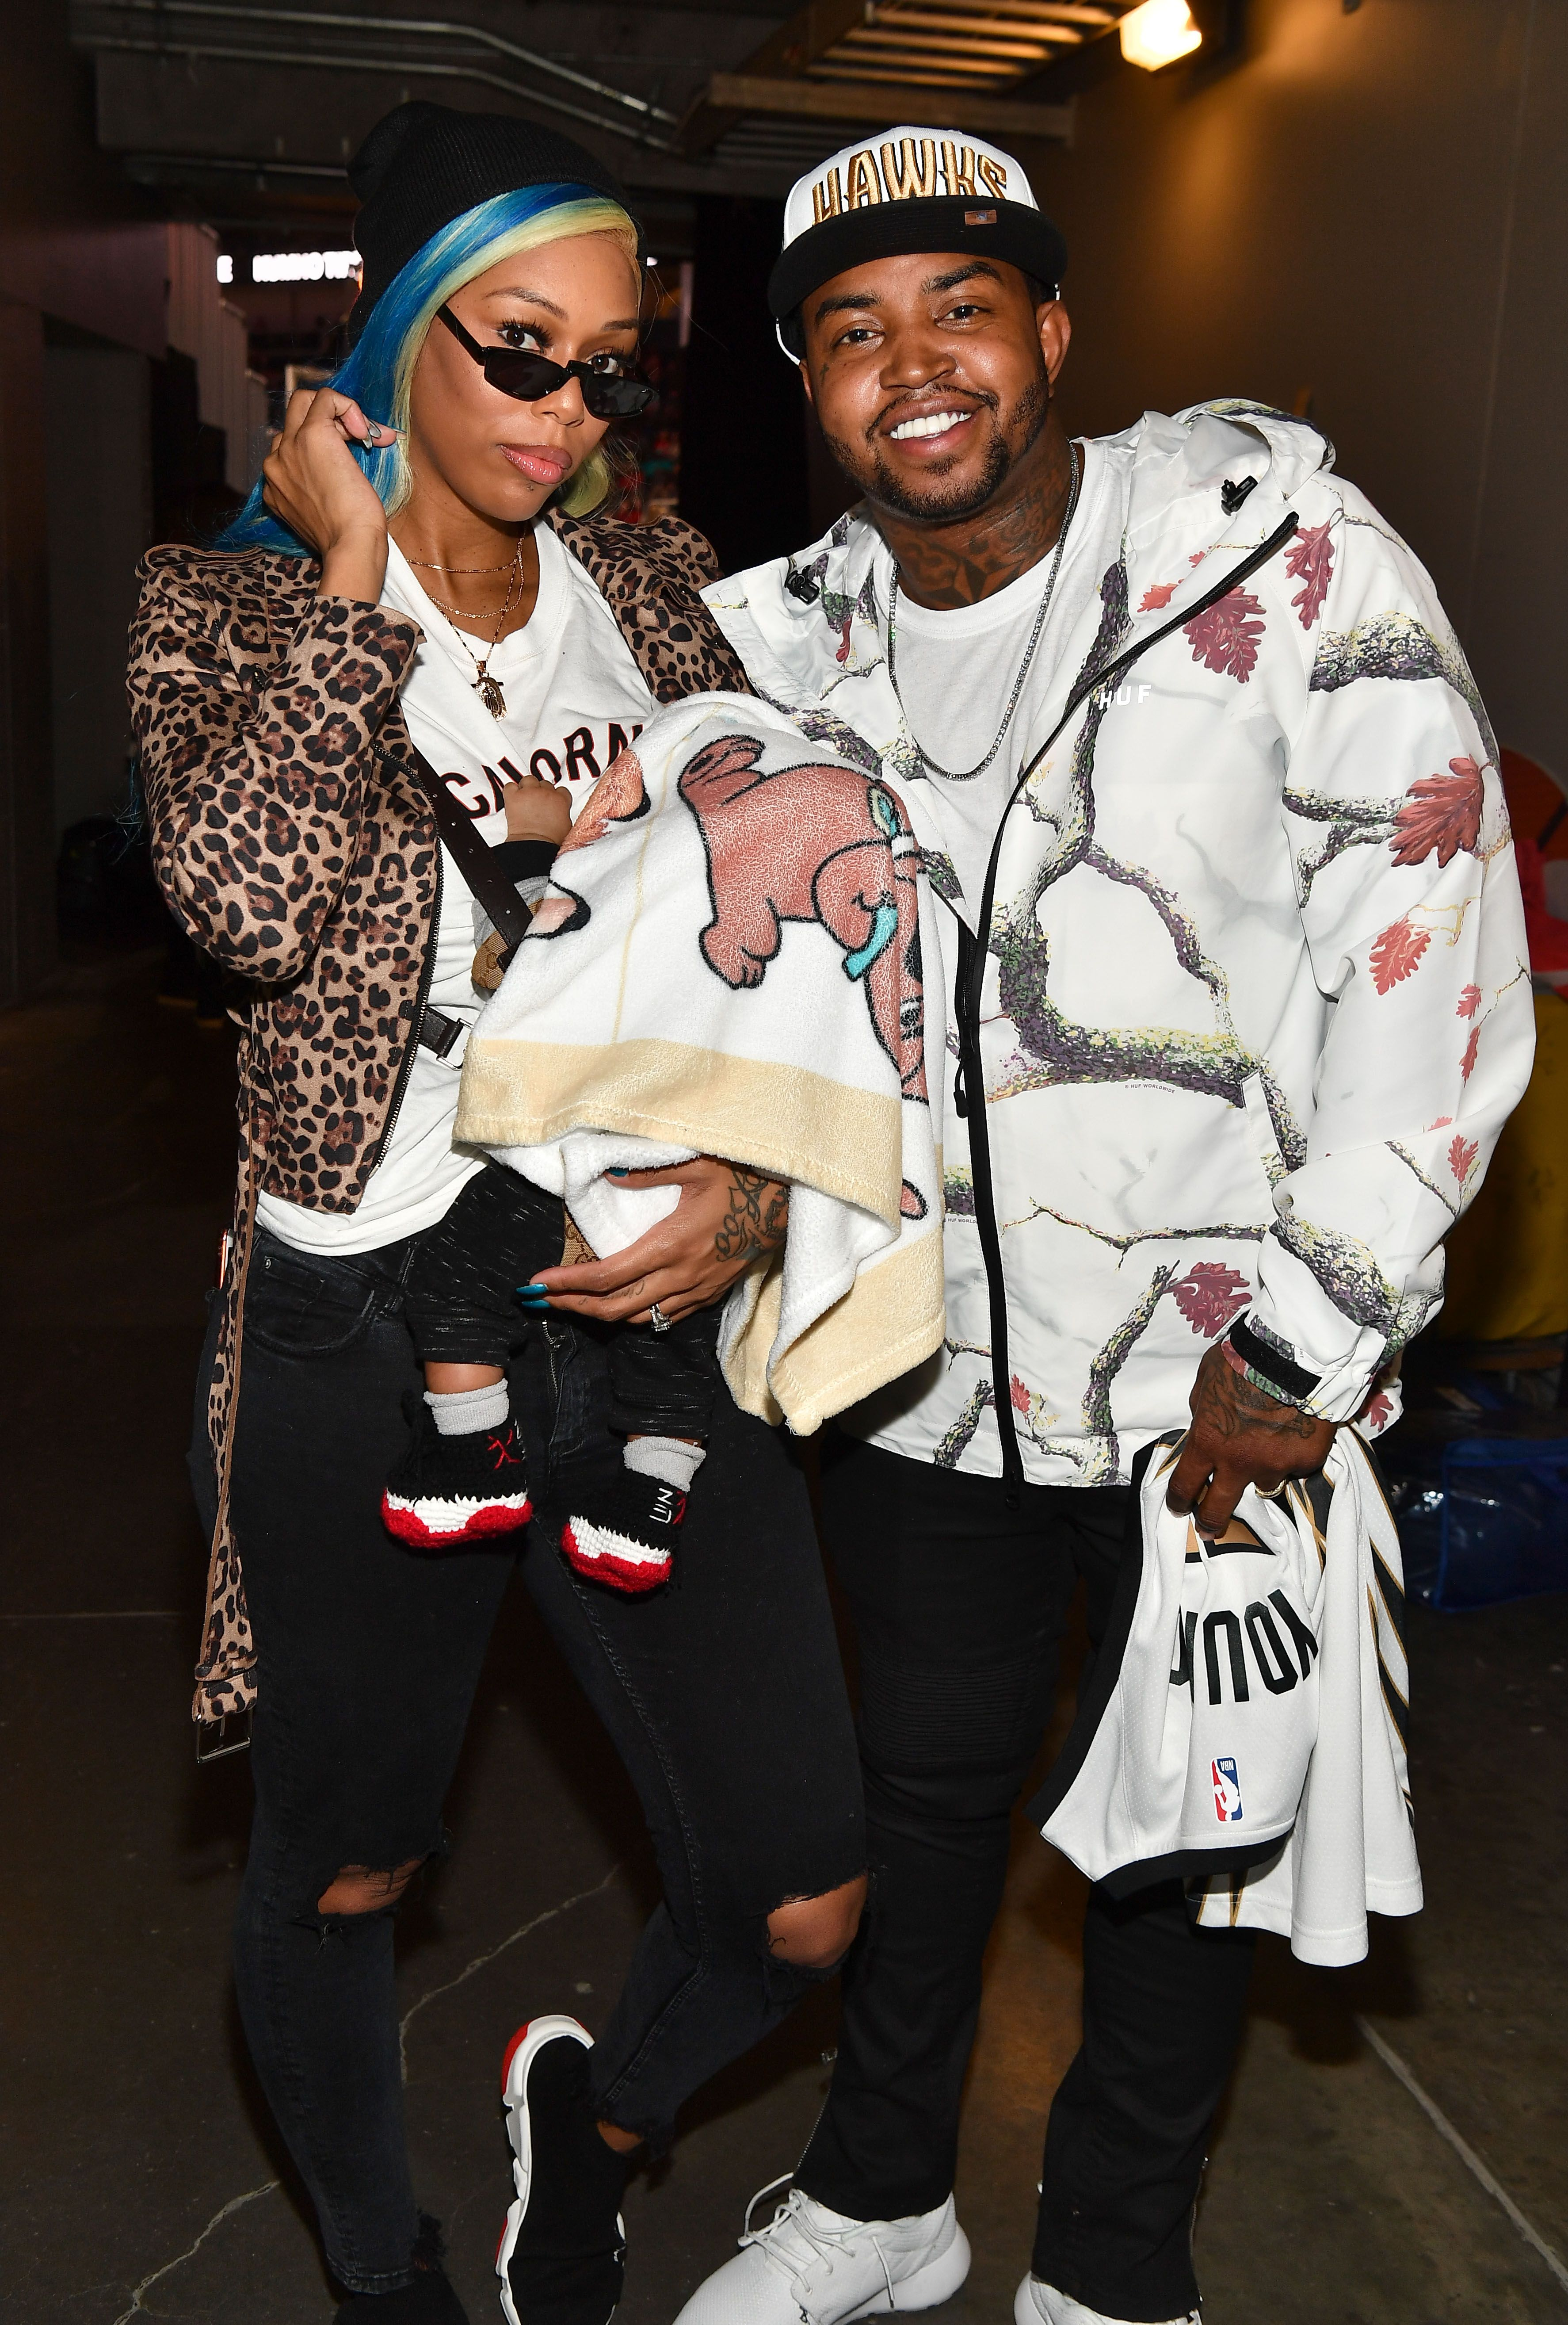 Bambi Benson and Lil Scrappy during the Detroit Pistons vs Atlanta Hawks Game at State Farm Arena on November 9, 2018 in Atlanta, Georgia.   Source: Getty Images